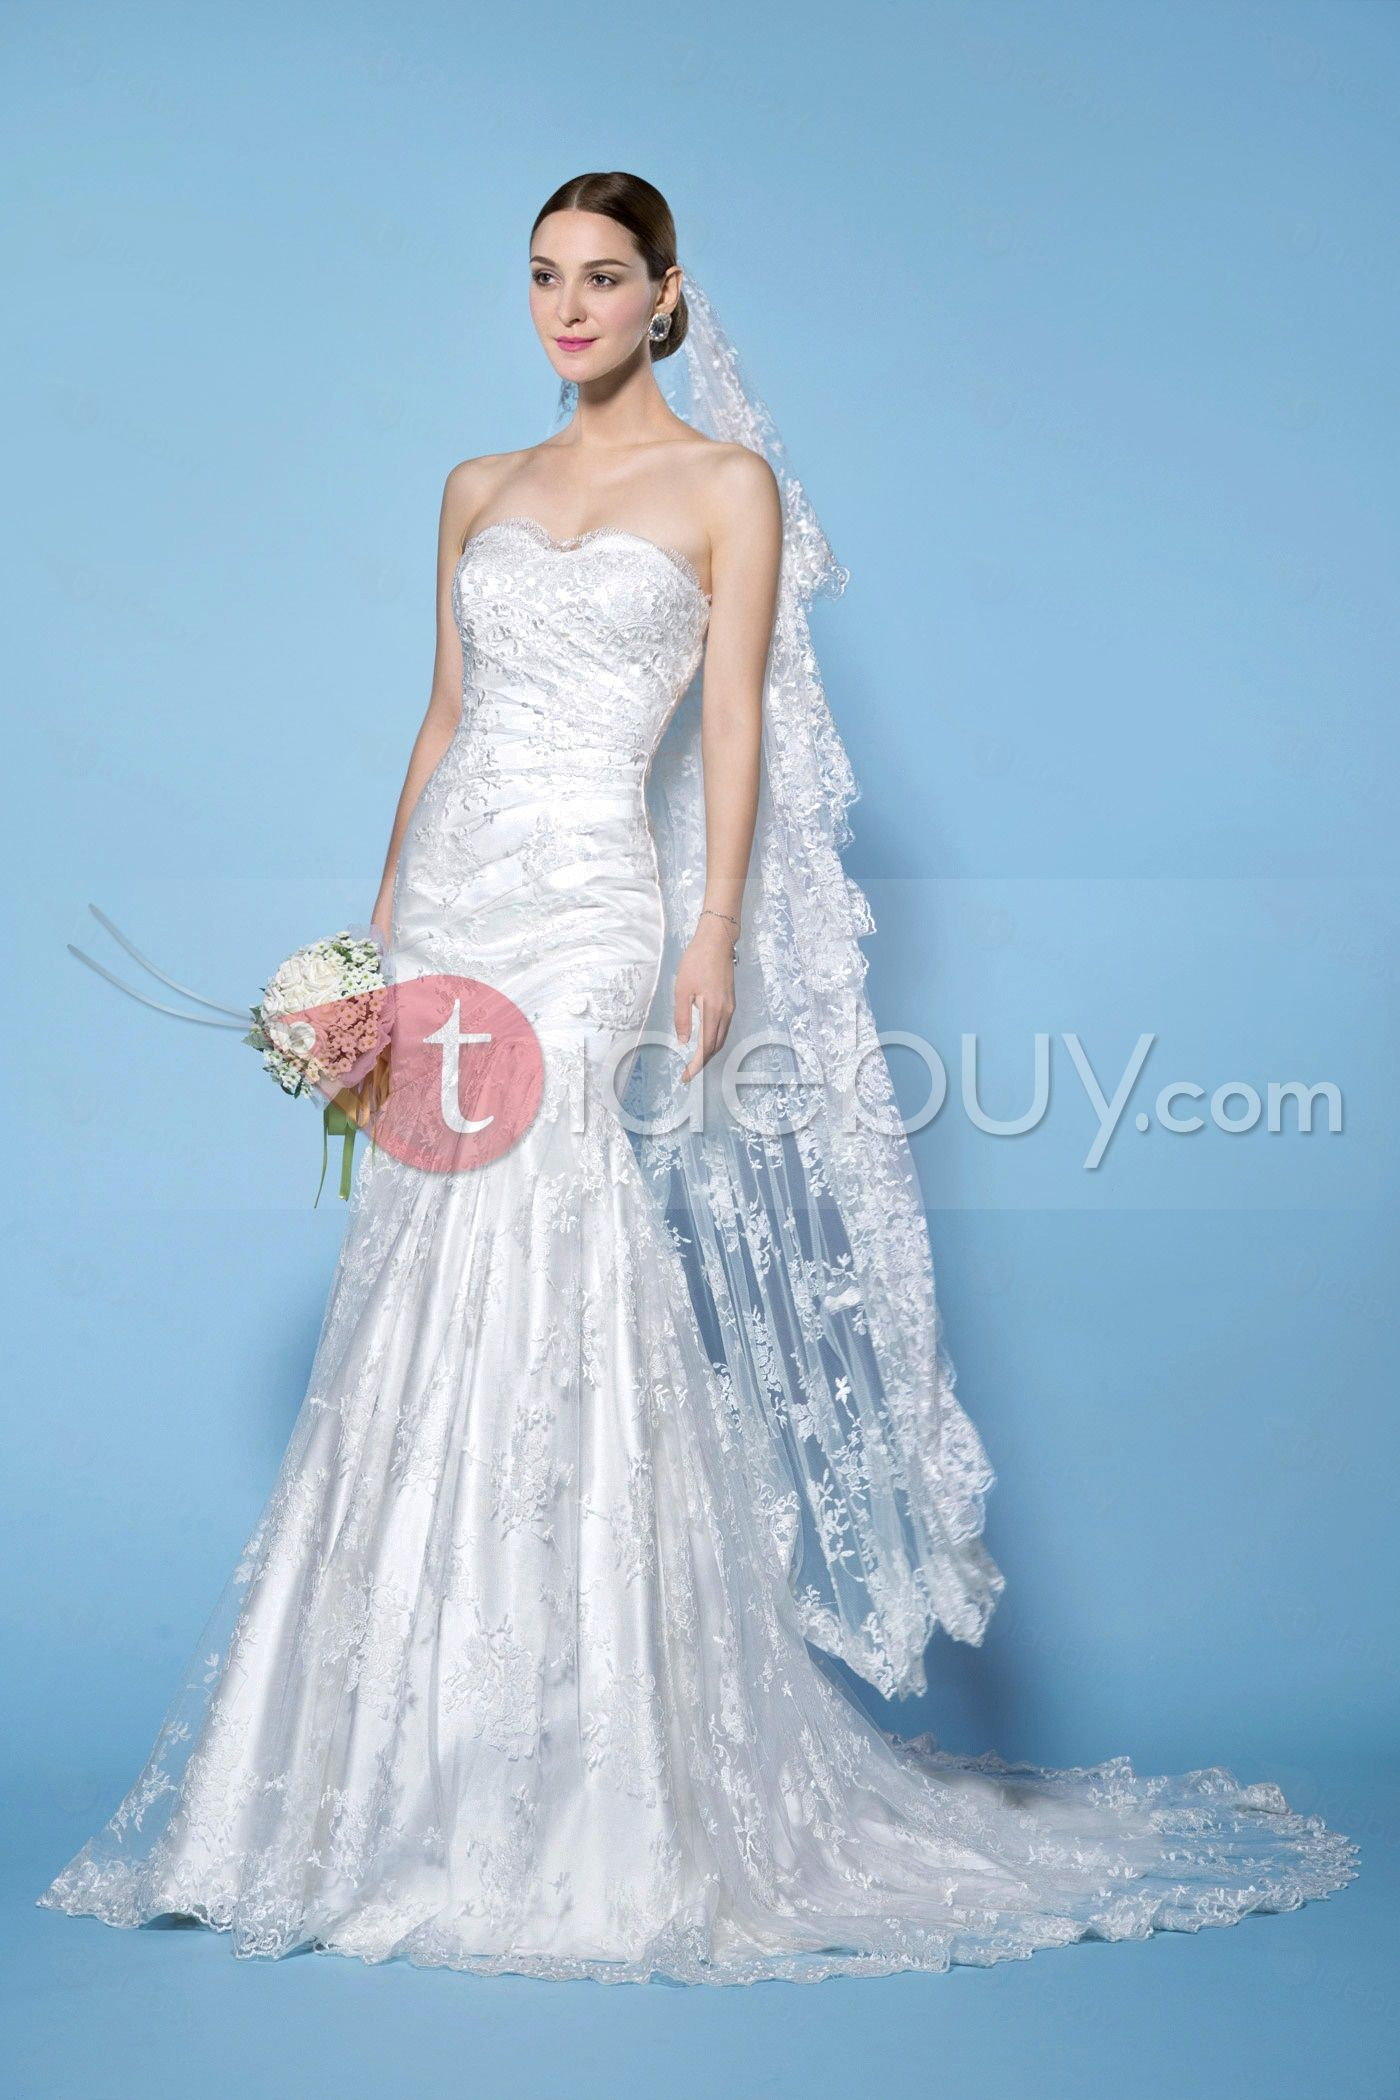 Enchanting Tidebuy.com Wedding Dresses Crest - All Wedding Dresses ...